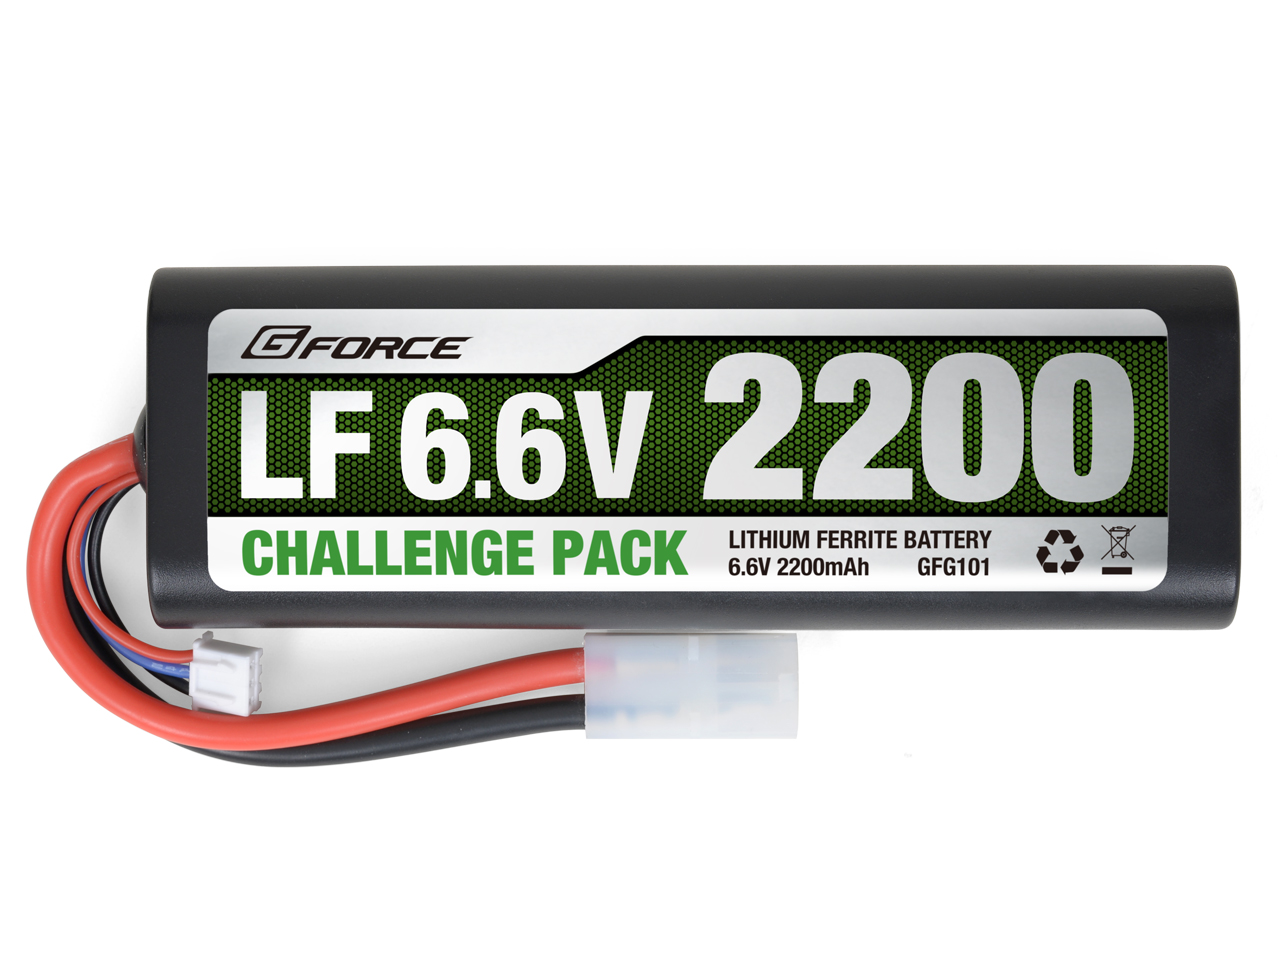 G-FORCE GFG101 LF Challenge Pack 6.6V 2200mAh